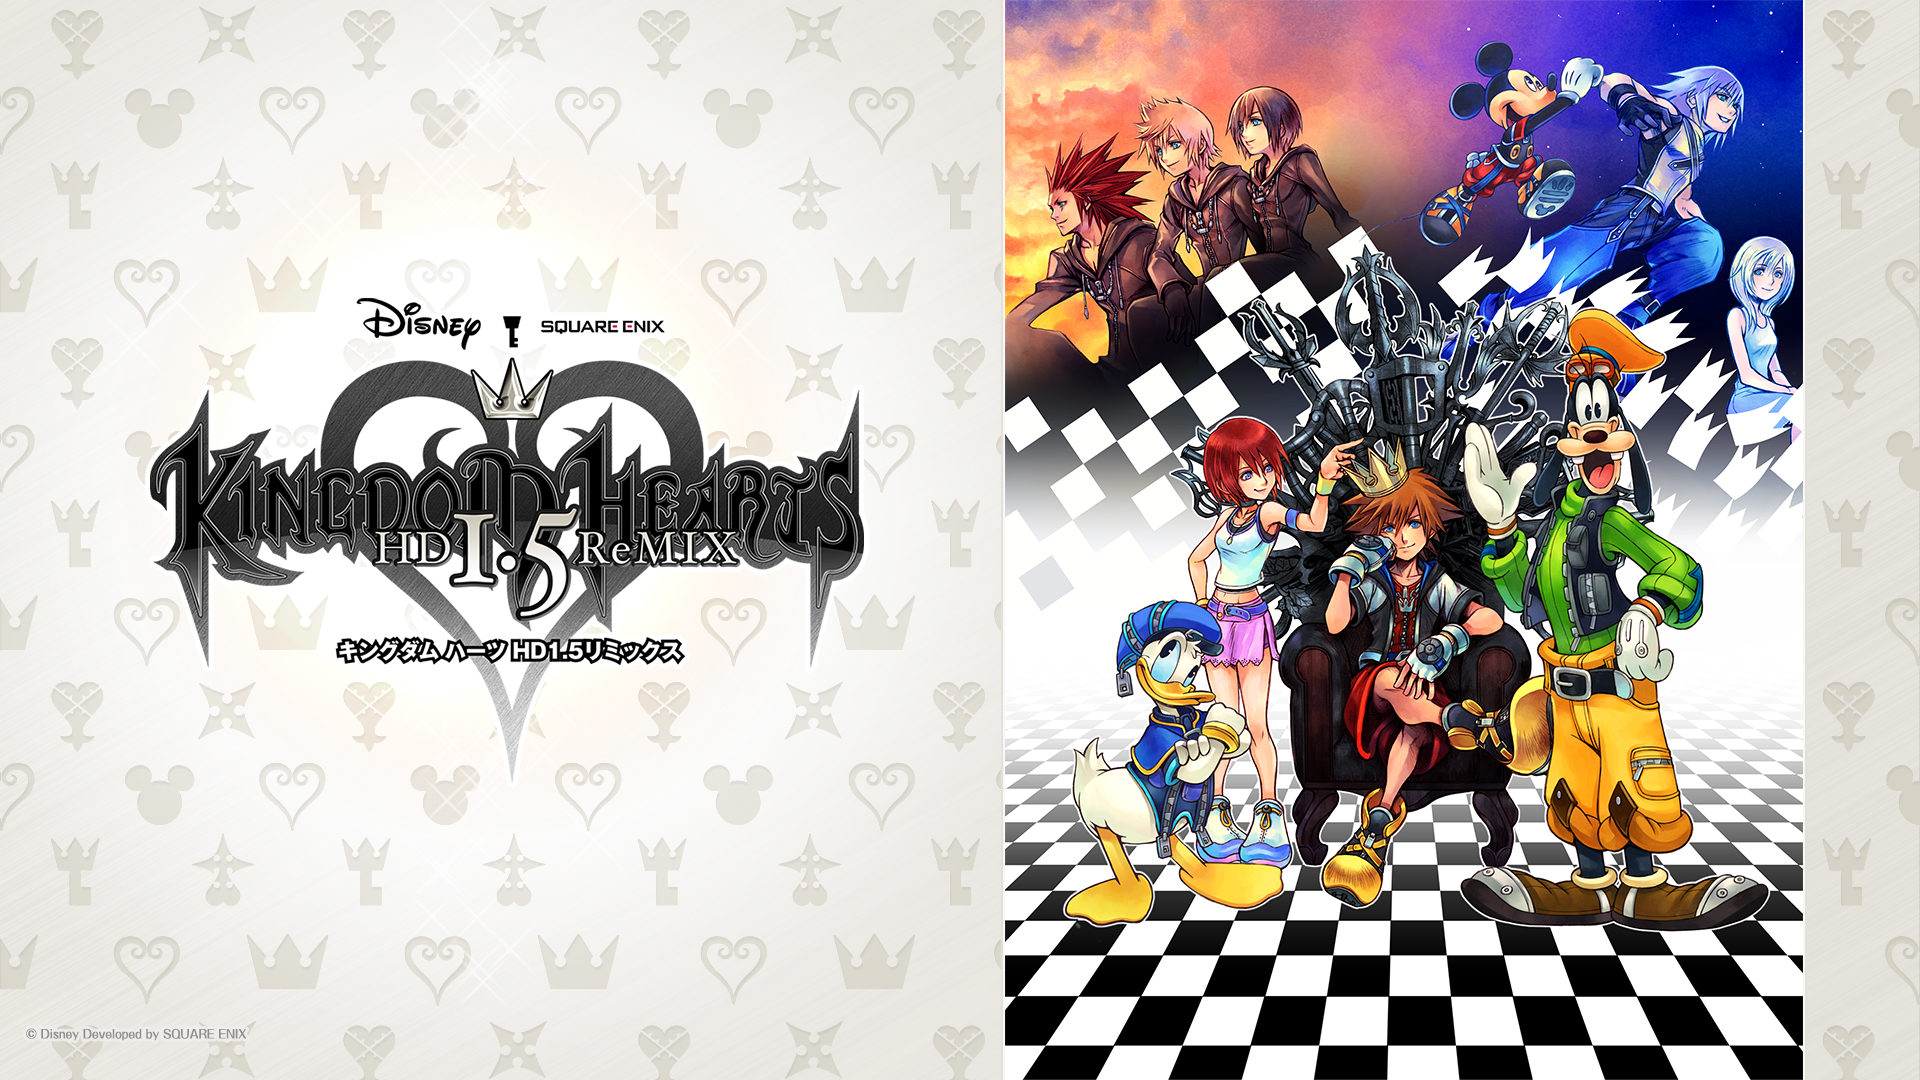 Ps3 Kingdom Hearts 1 5 Hd Remix Tvcm 壁紙公開 わぷわぷだい